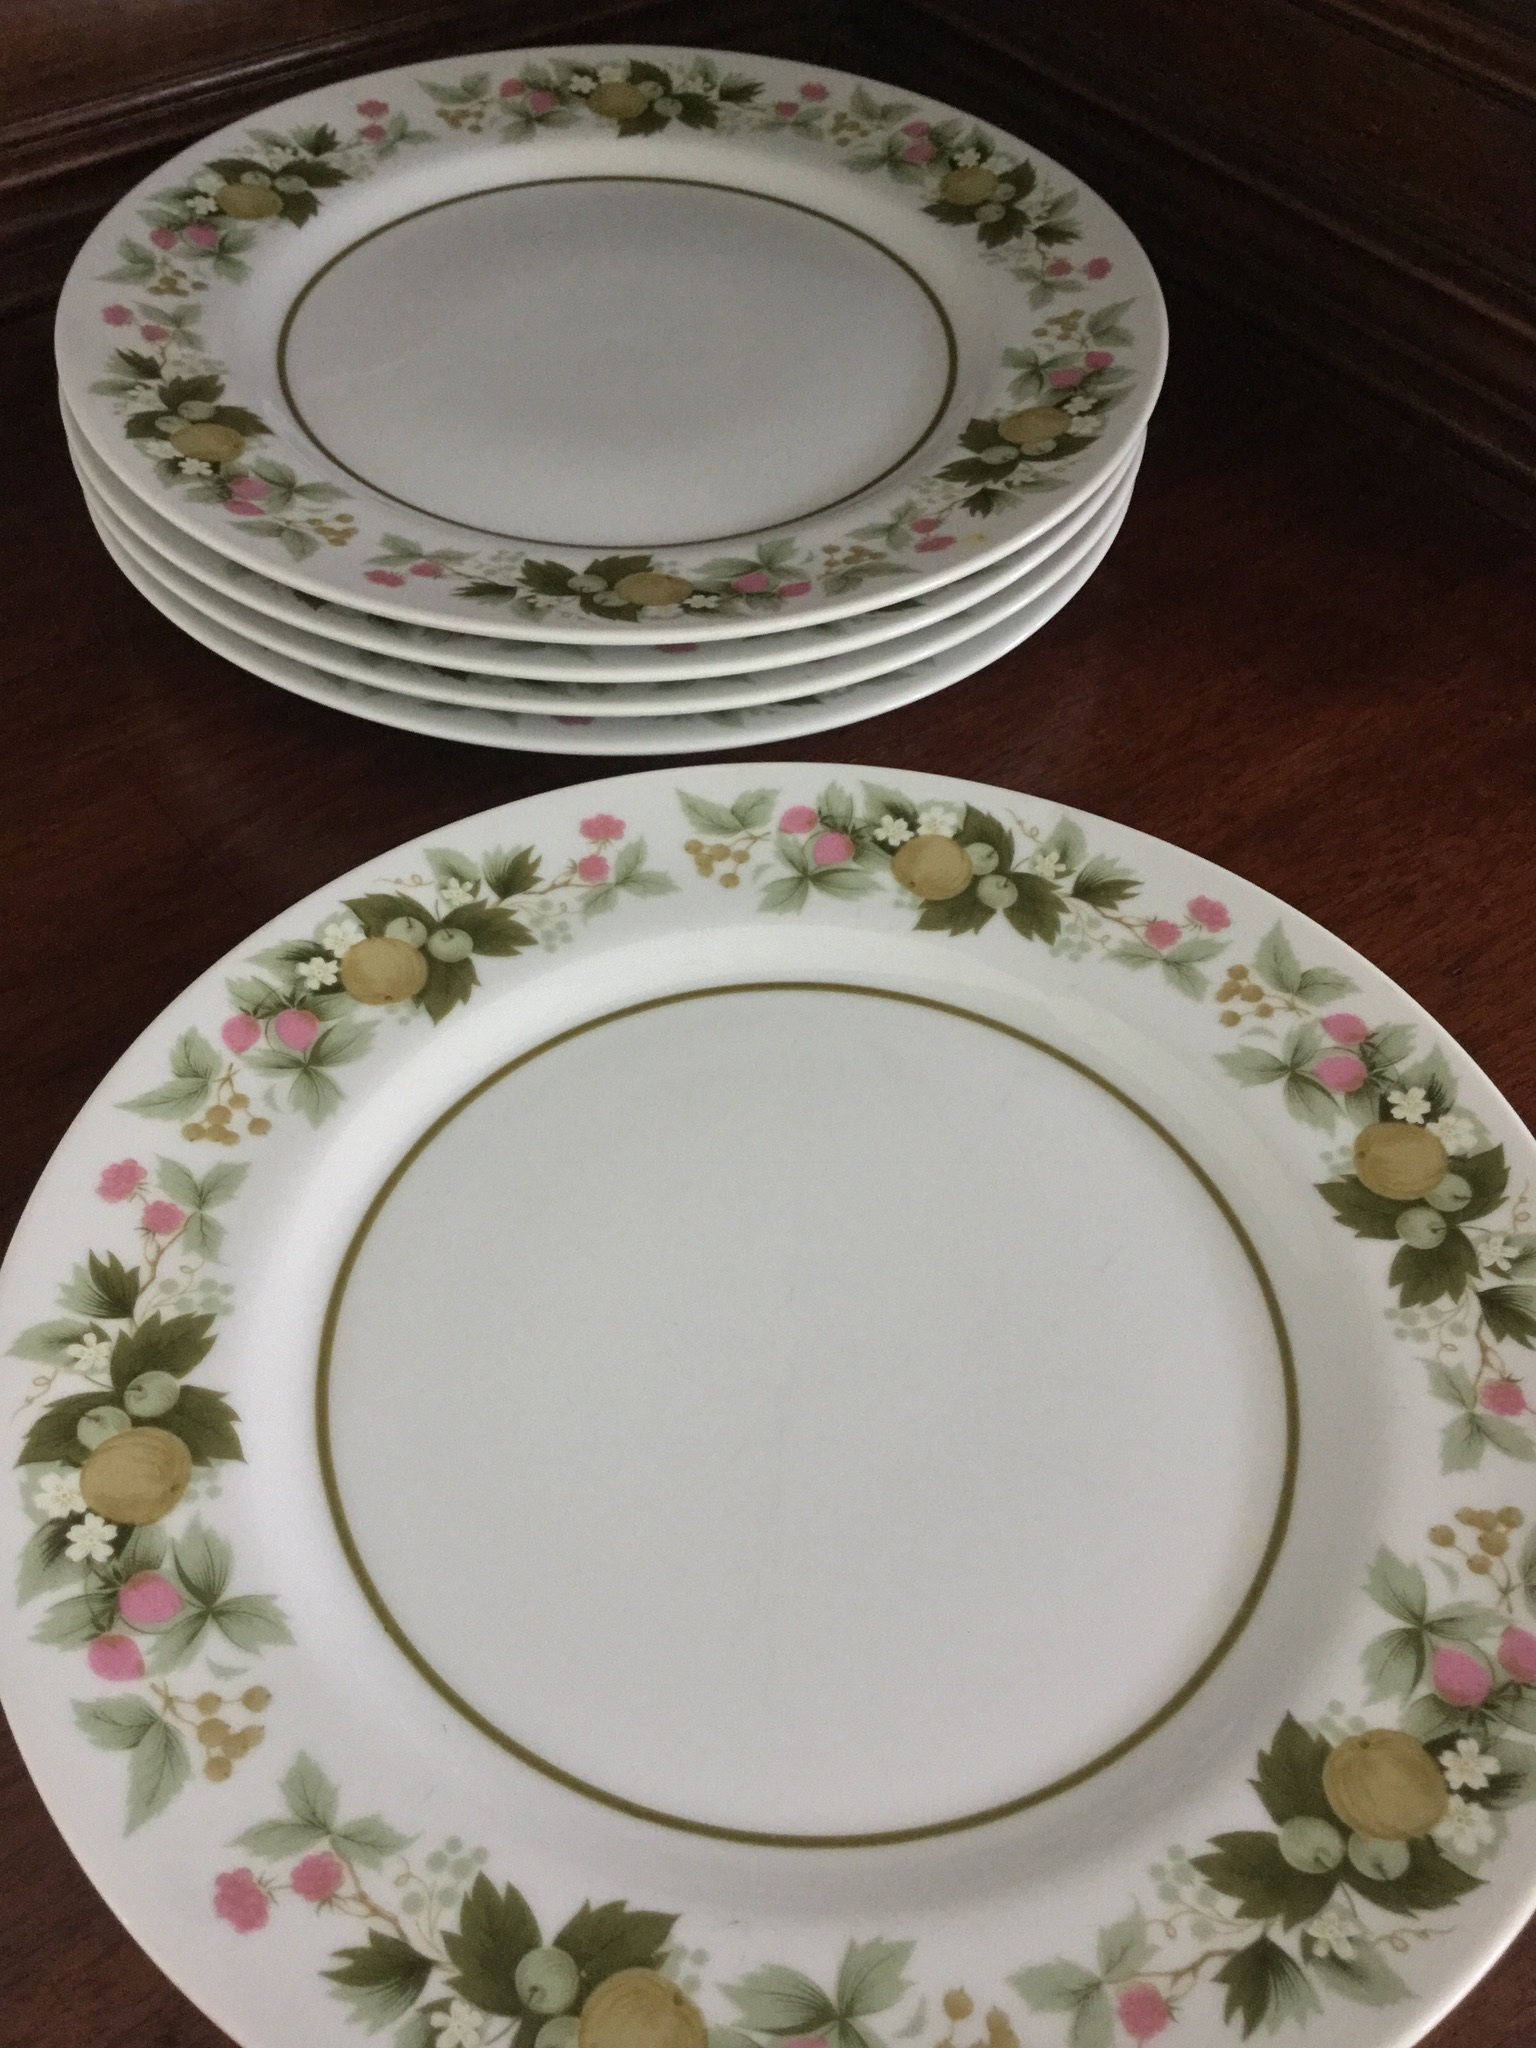 & Mikasa Eclipse Sumay Dinner Plates Set of 5